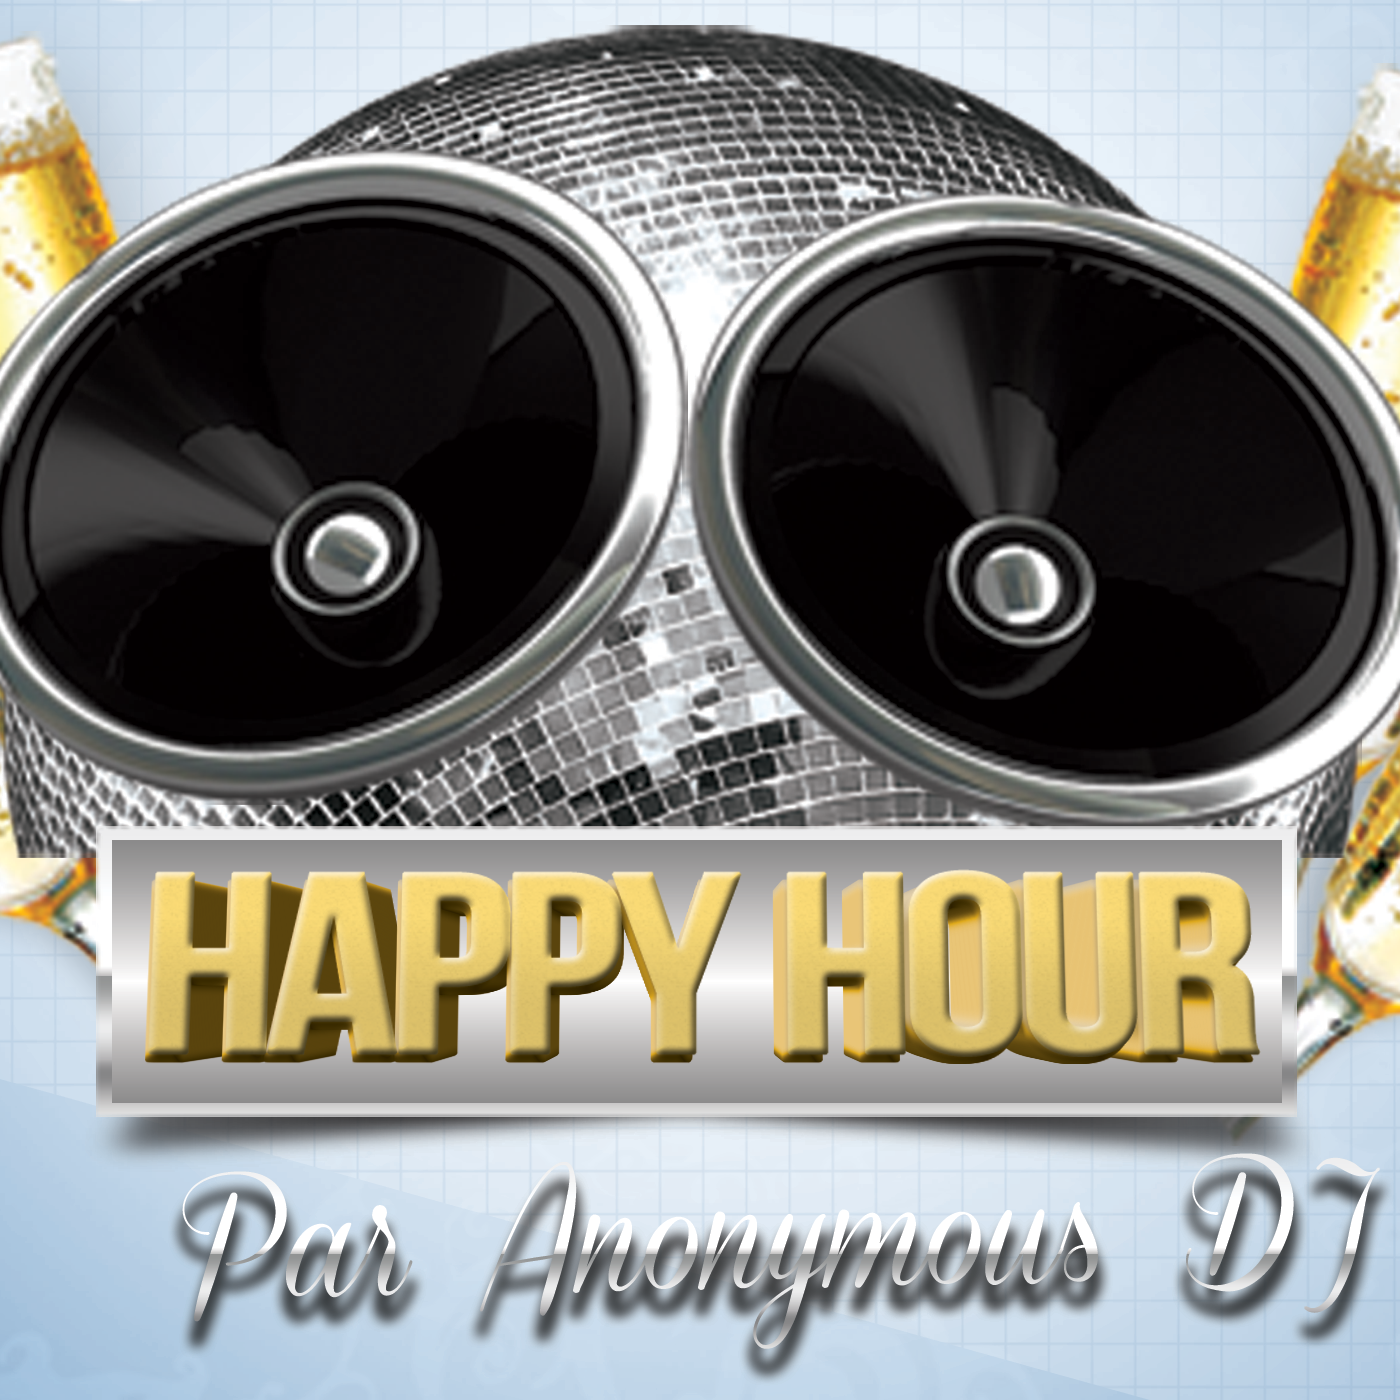 Happy Hour by AnonymousDJ